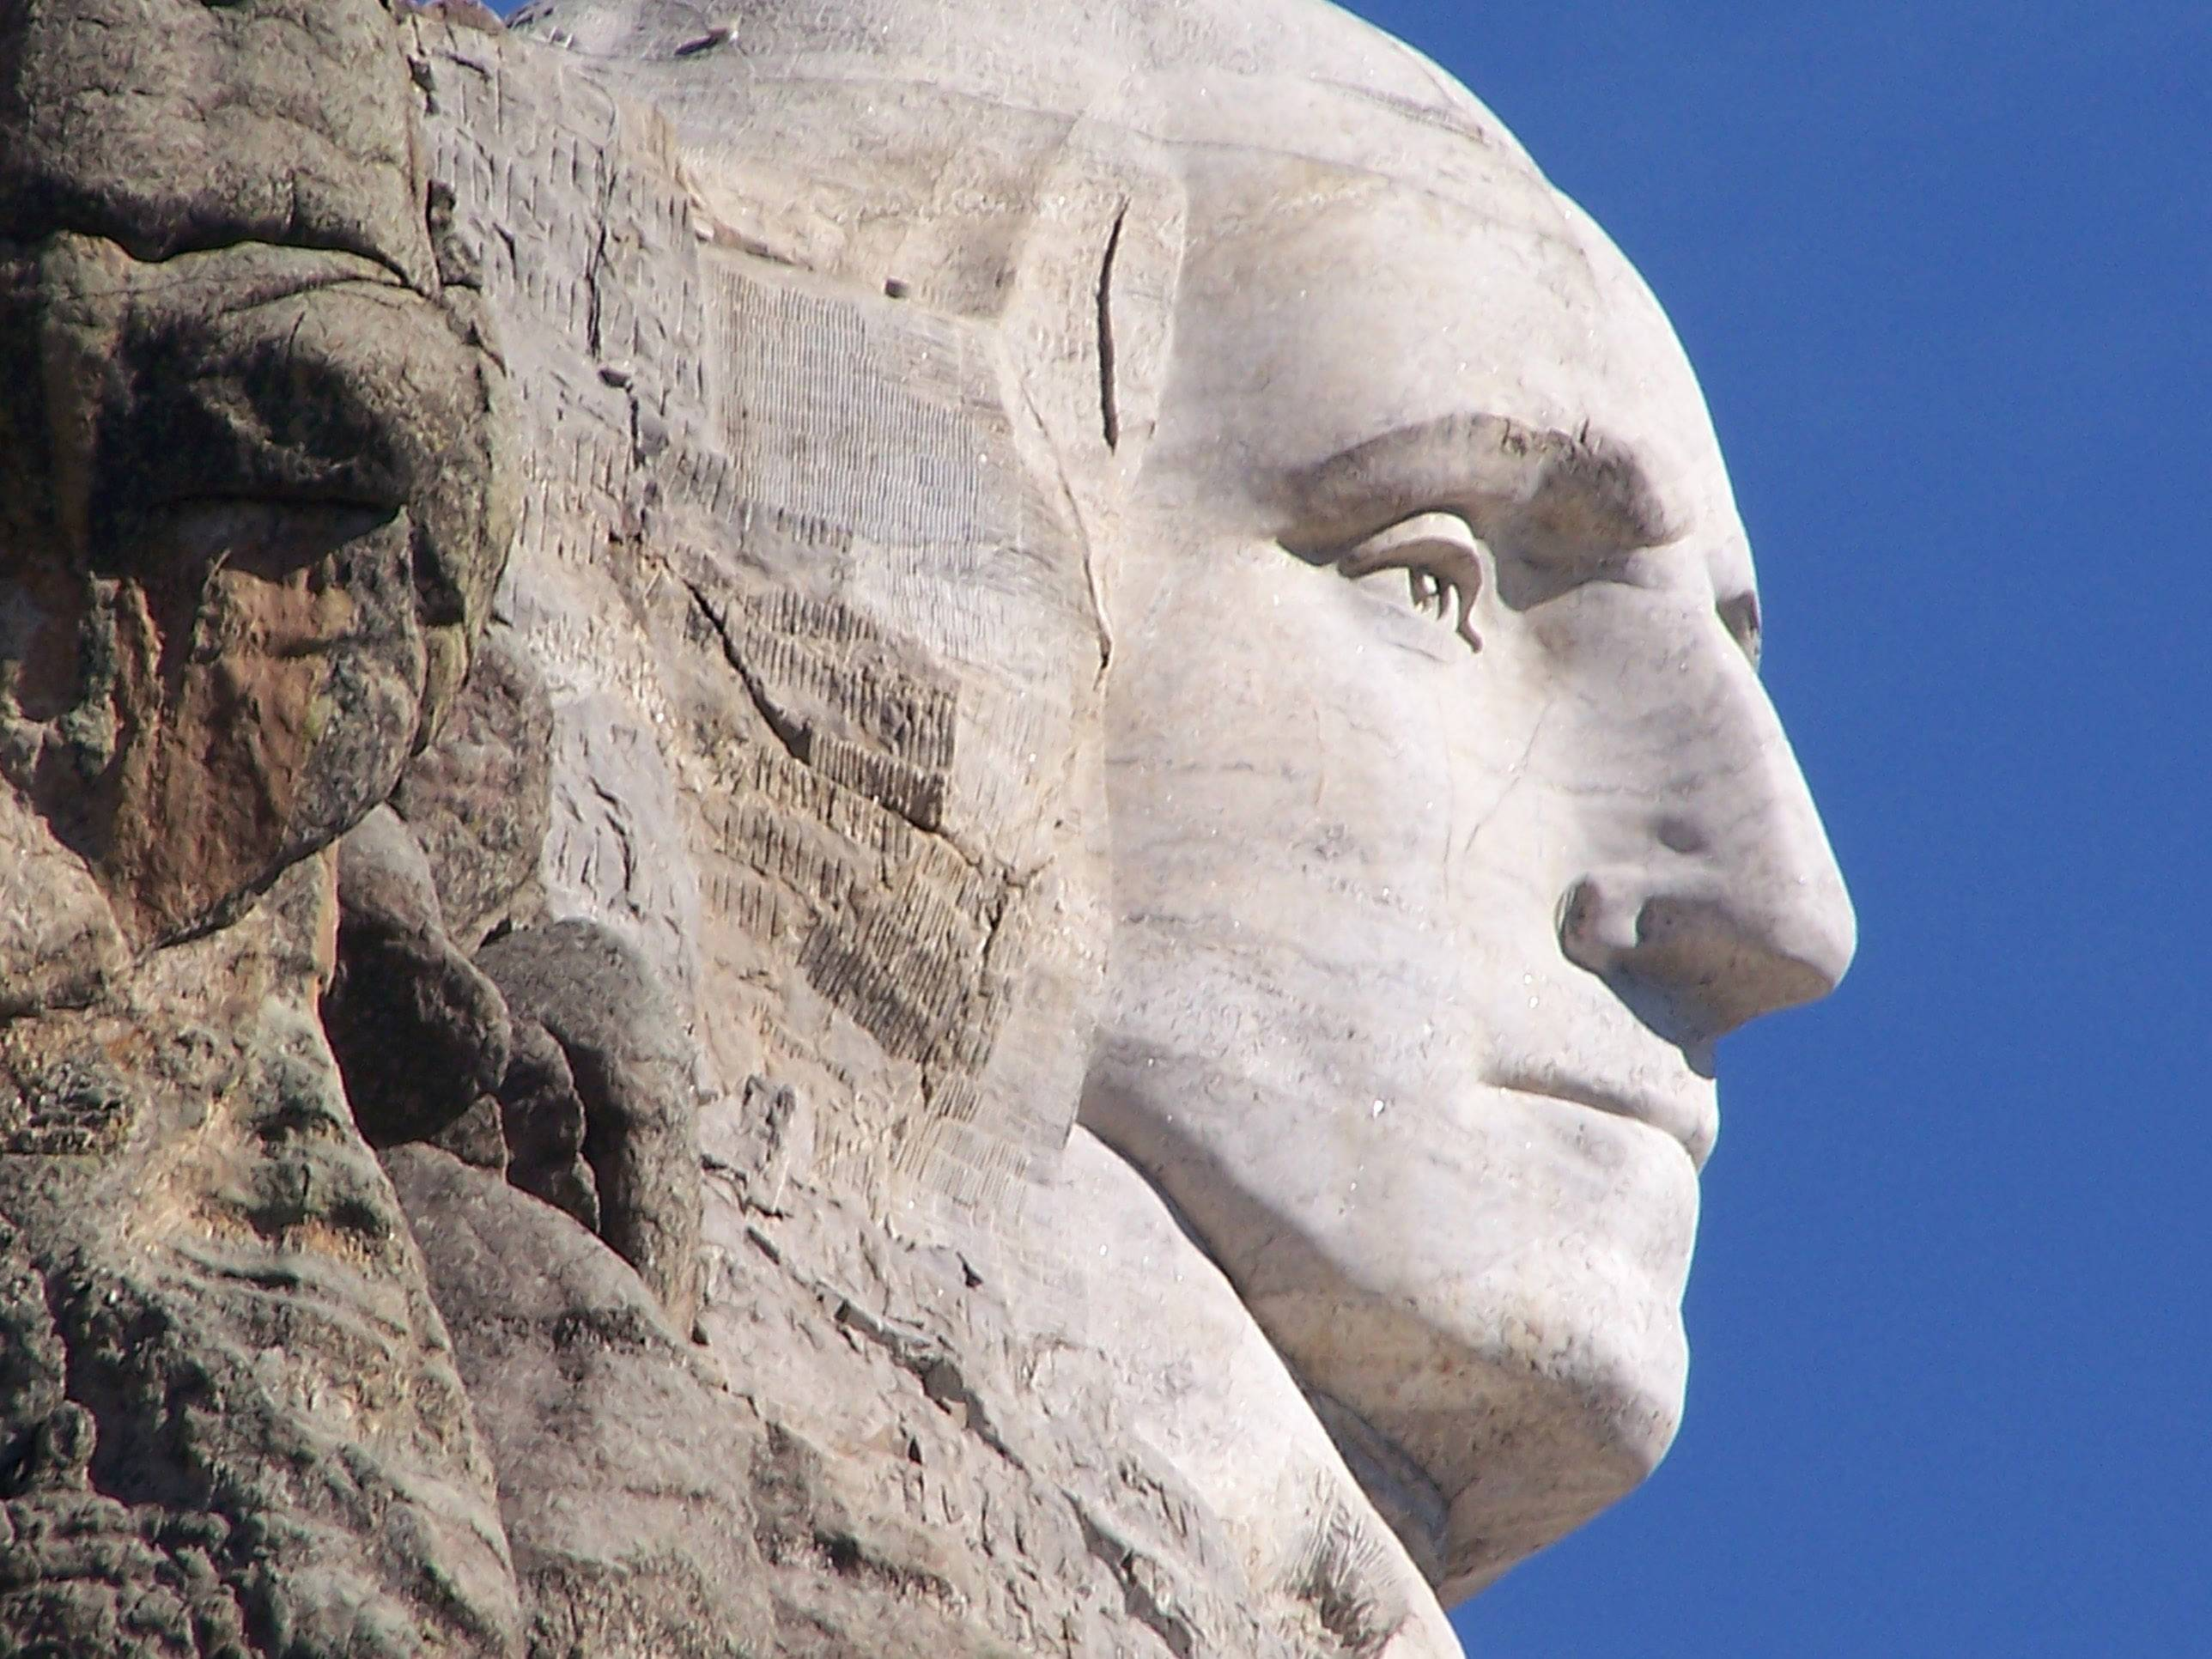 A profile picture of George Washington at Mount Rushmore Monument in 2006.